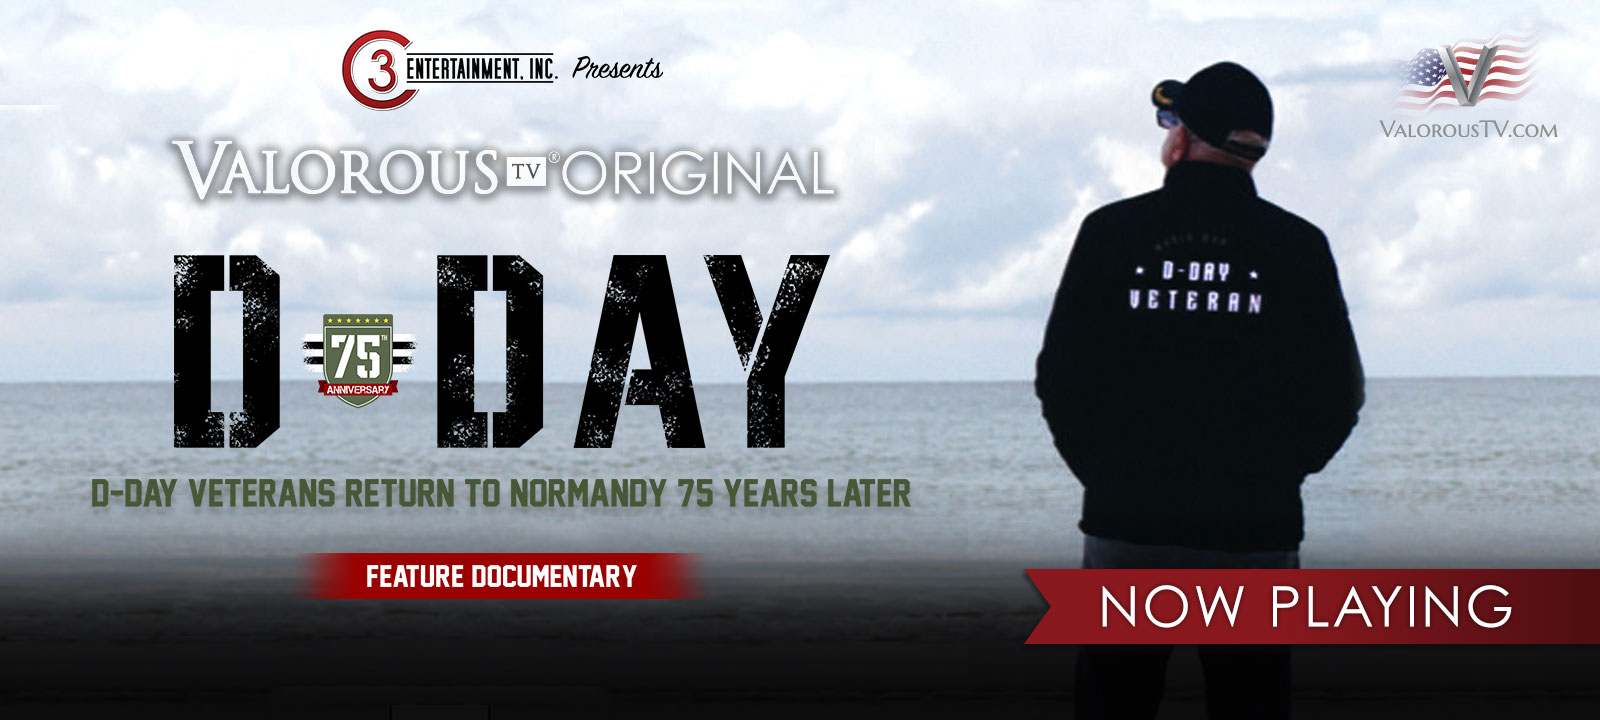 d-day_vtvoriginal_slider